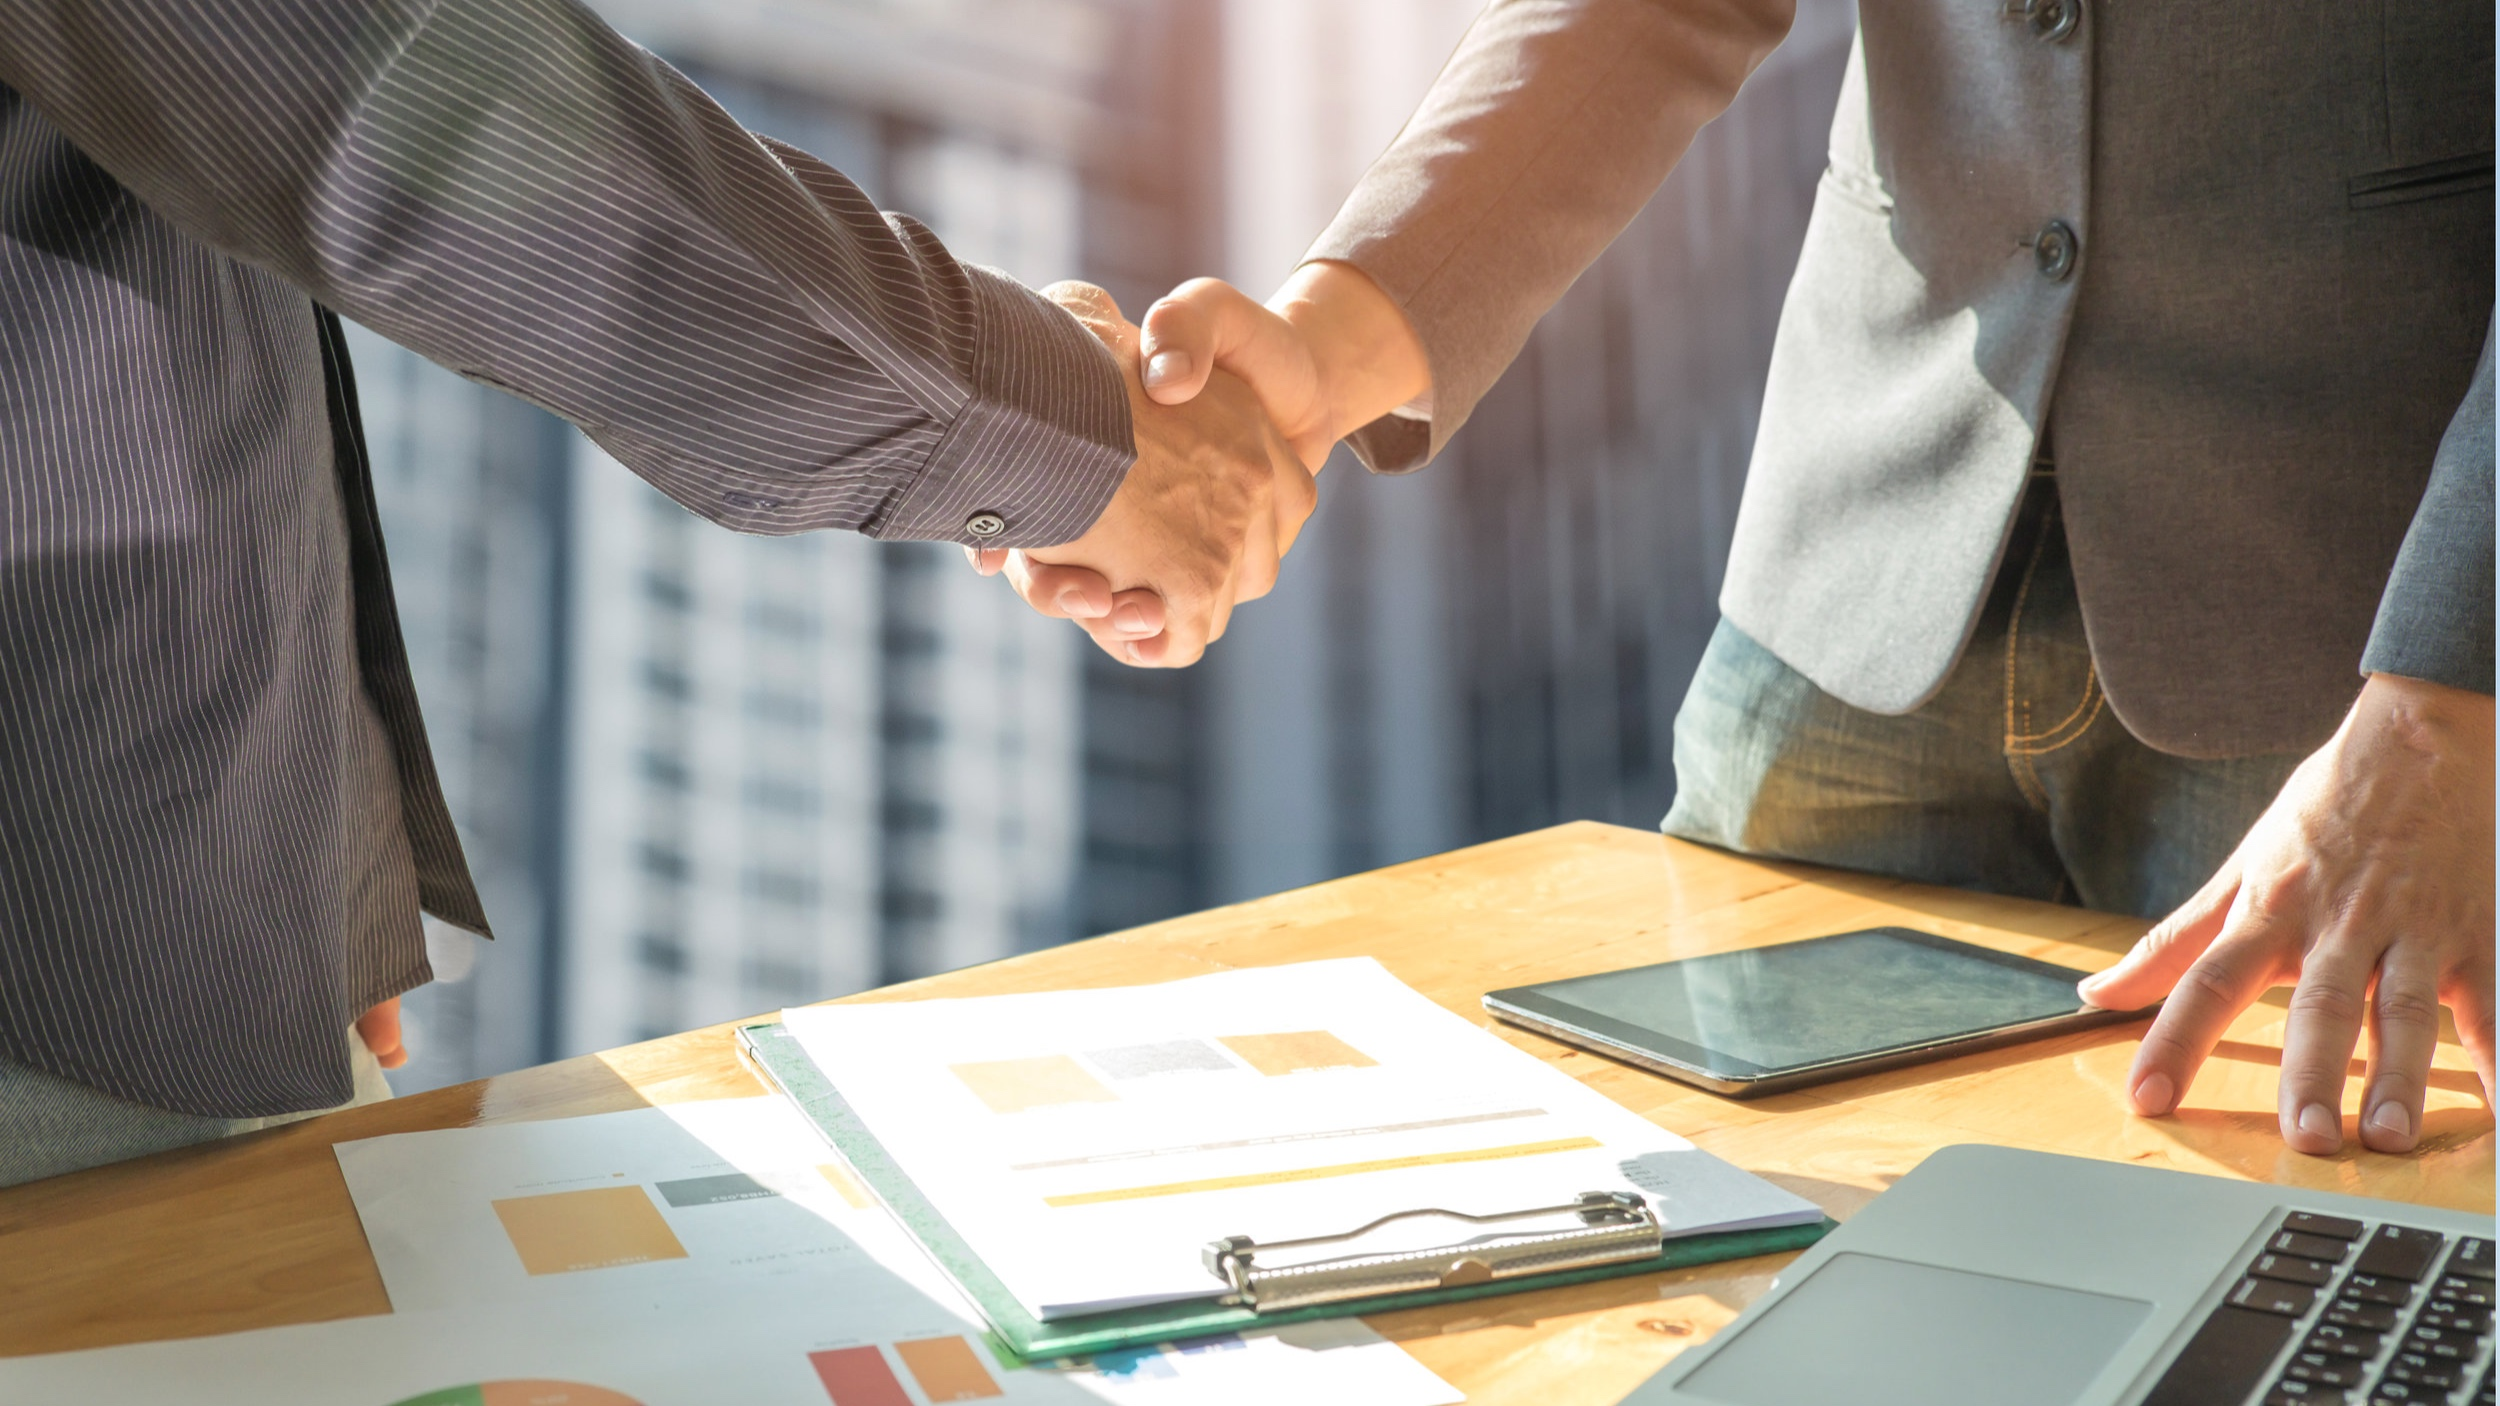 business-concept-two-men-shake-hands-with-P2DZLE6.jpg